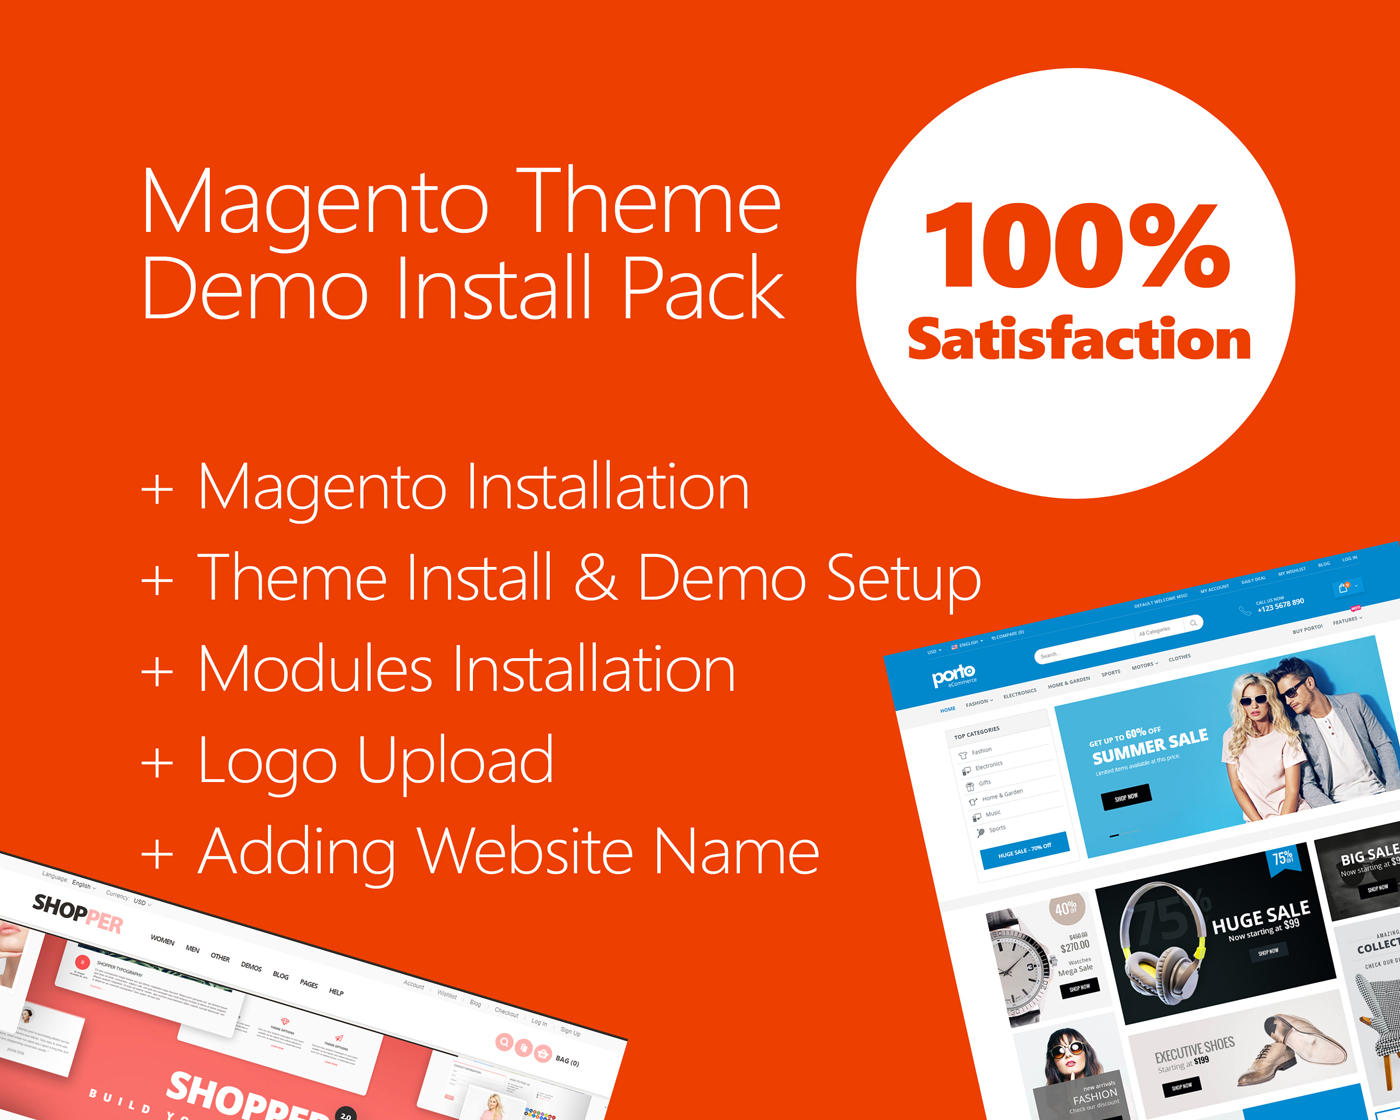 Magento Theme Install & Demo Setup (+ Modules & Logo Setup)  by hasanet - 109816